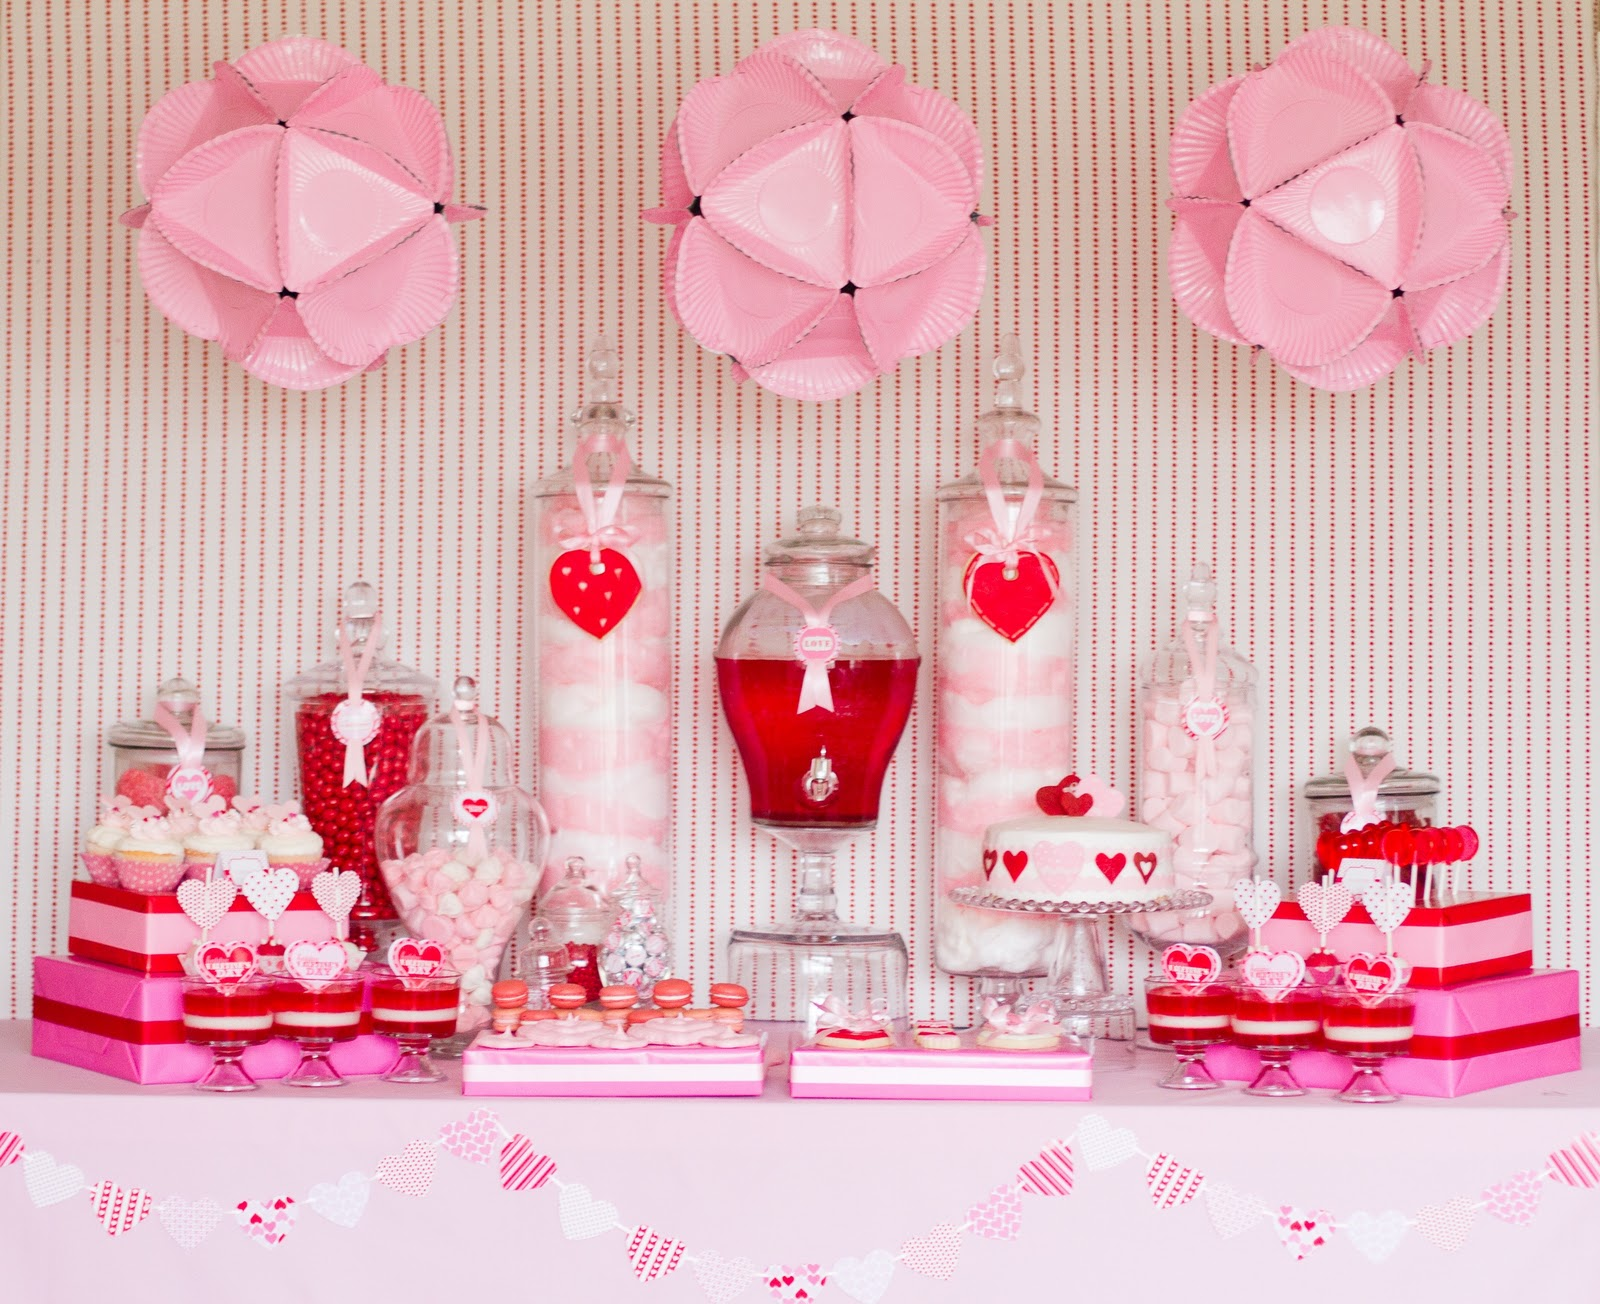 55db8317daf2 5) Your newest collection for Valentine s Day is absolutely darling (as is  the entire photo shoot!) Please tell us more about your inspiration behind  this ...